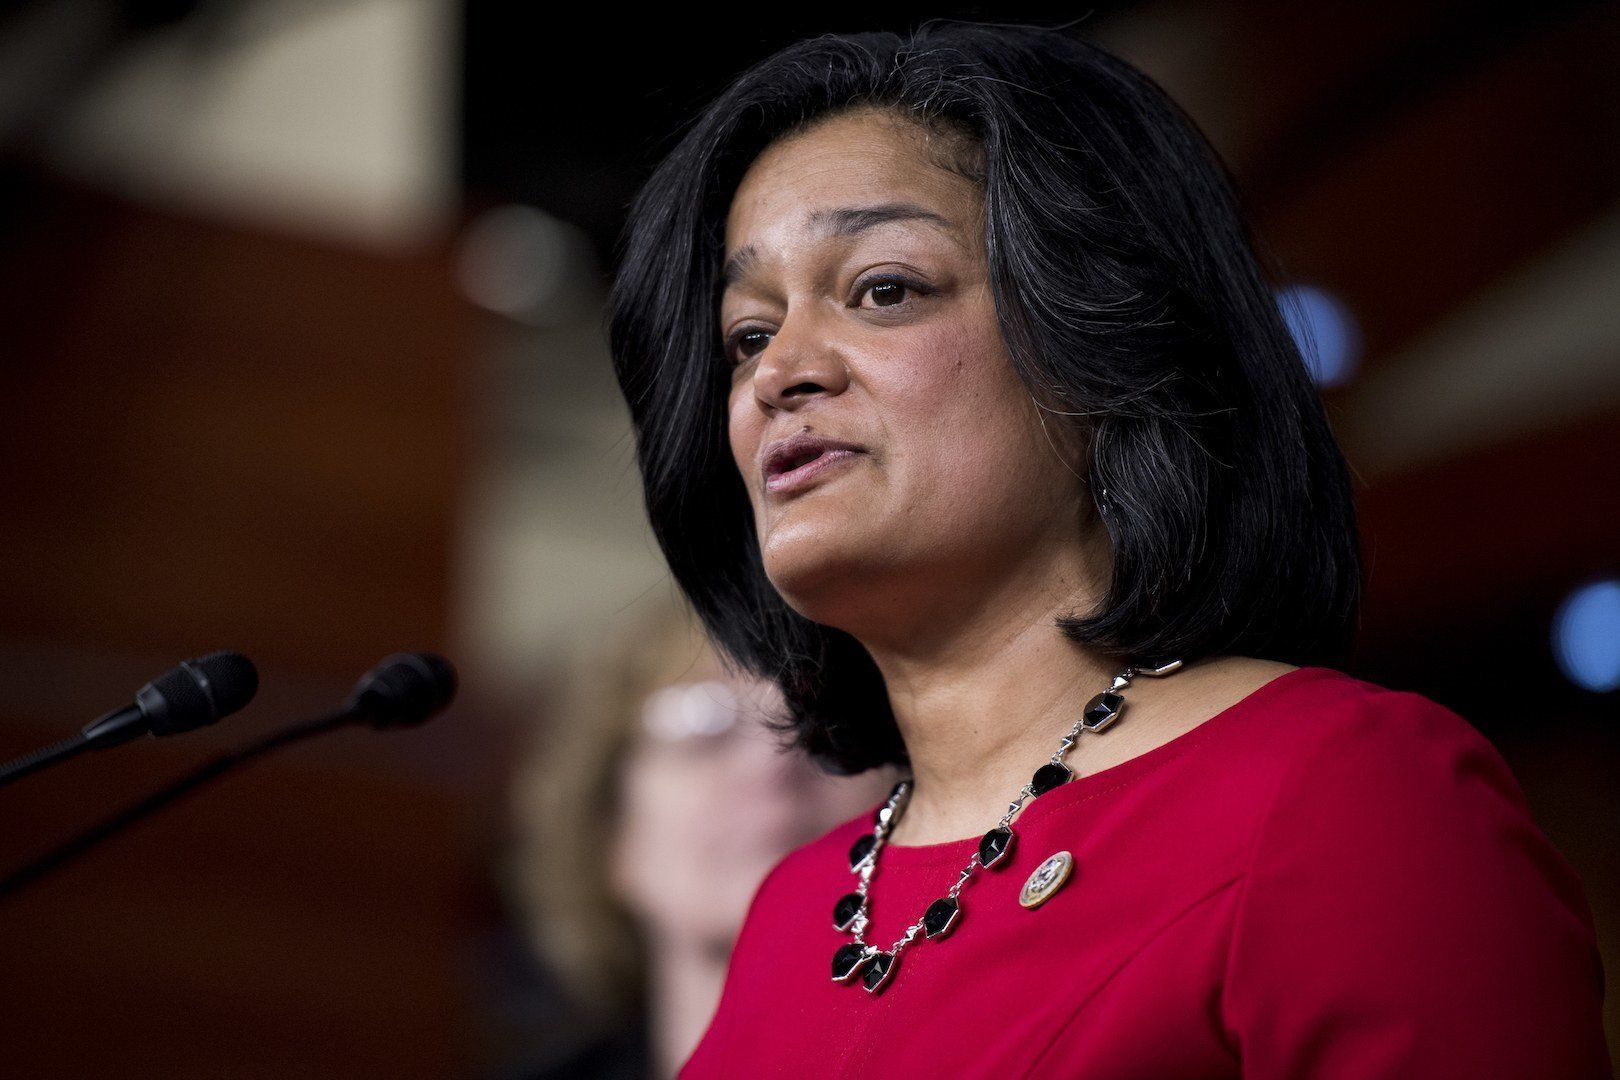 Rep. Pramila Jayapal (D-Wash.), a freshman lawmaker, has emerged as an outspoken voice on health care, immigration reform and